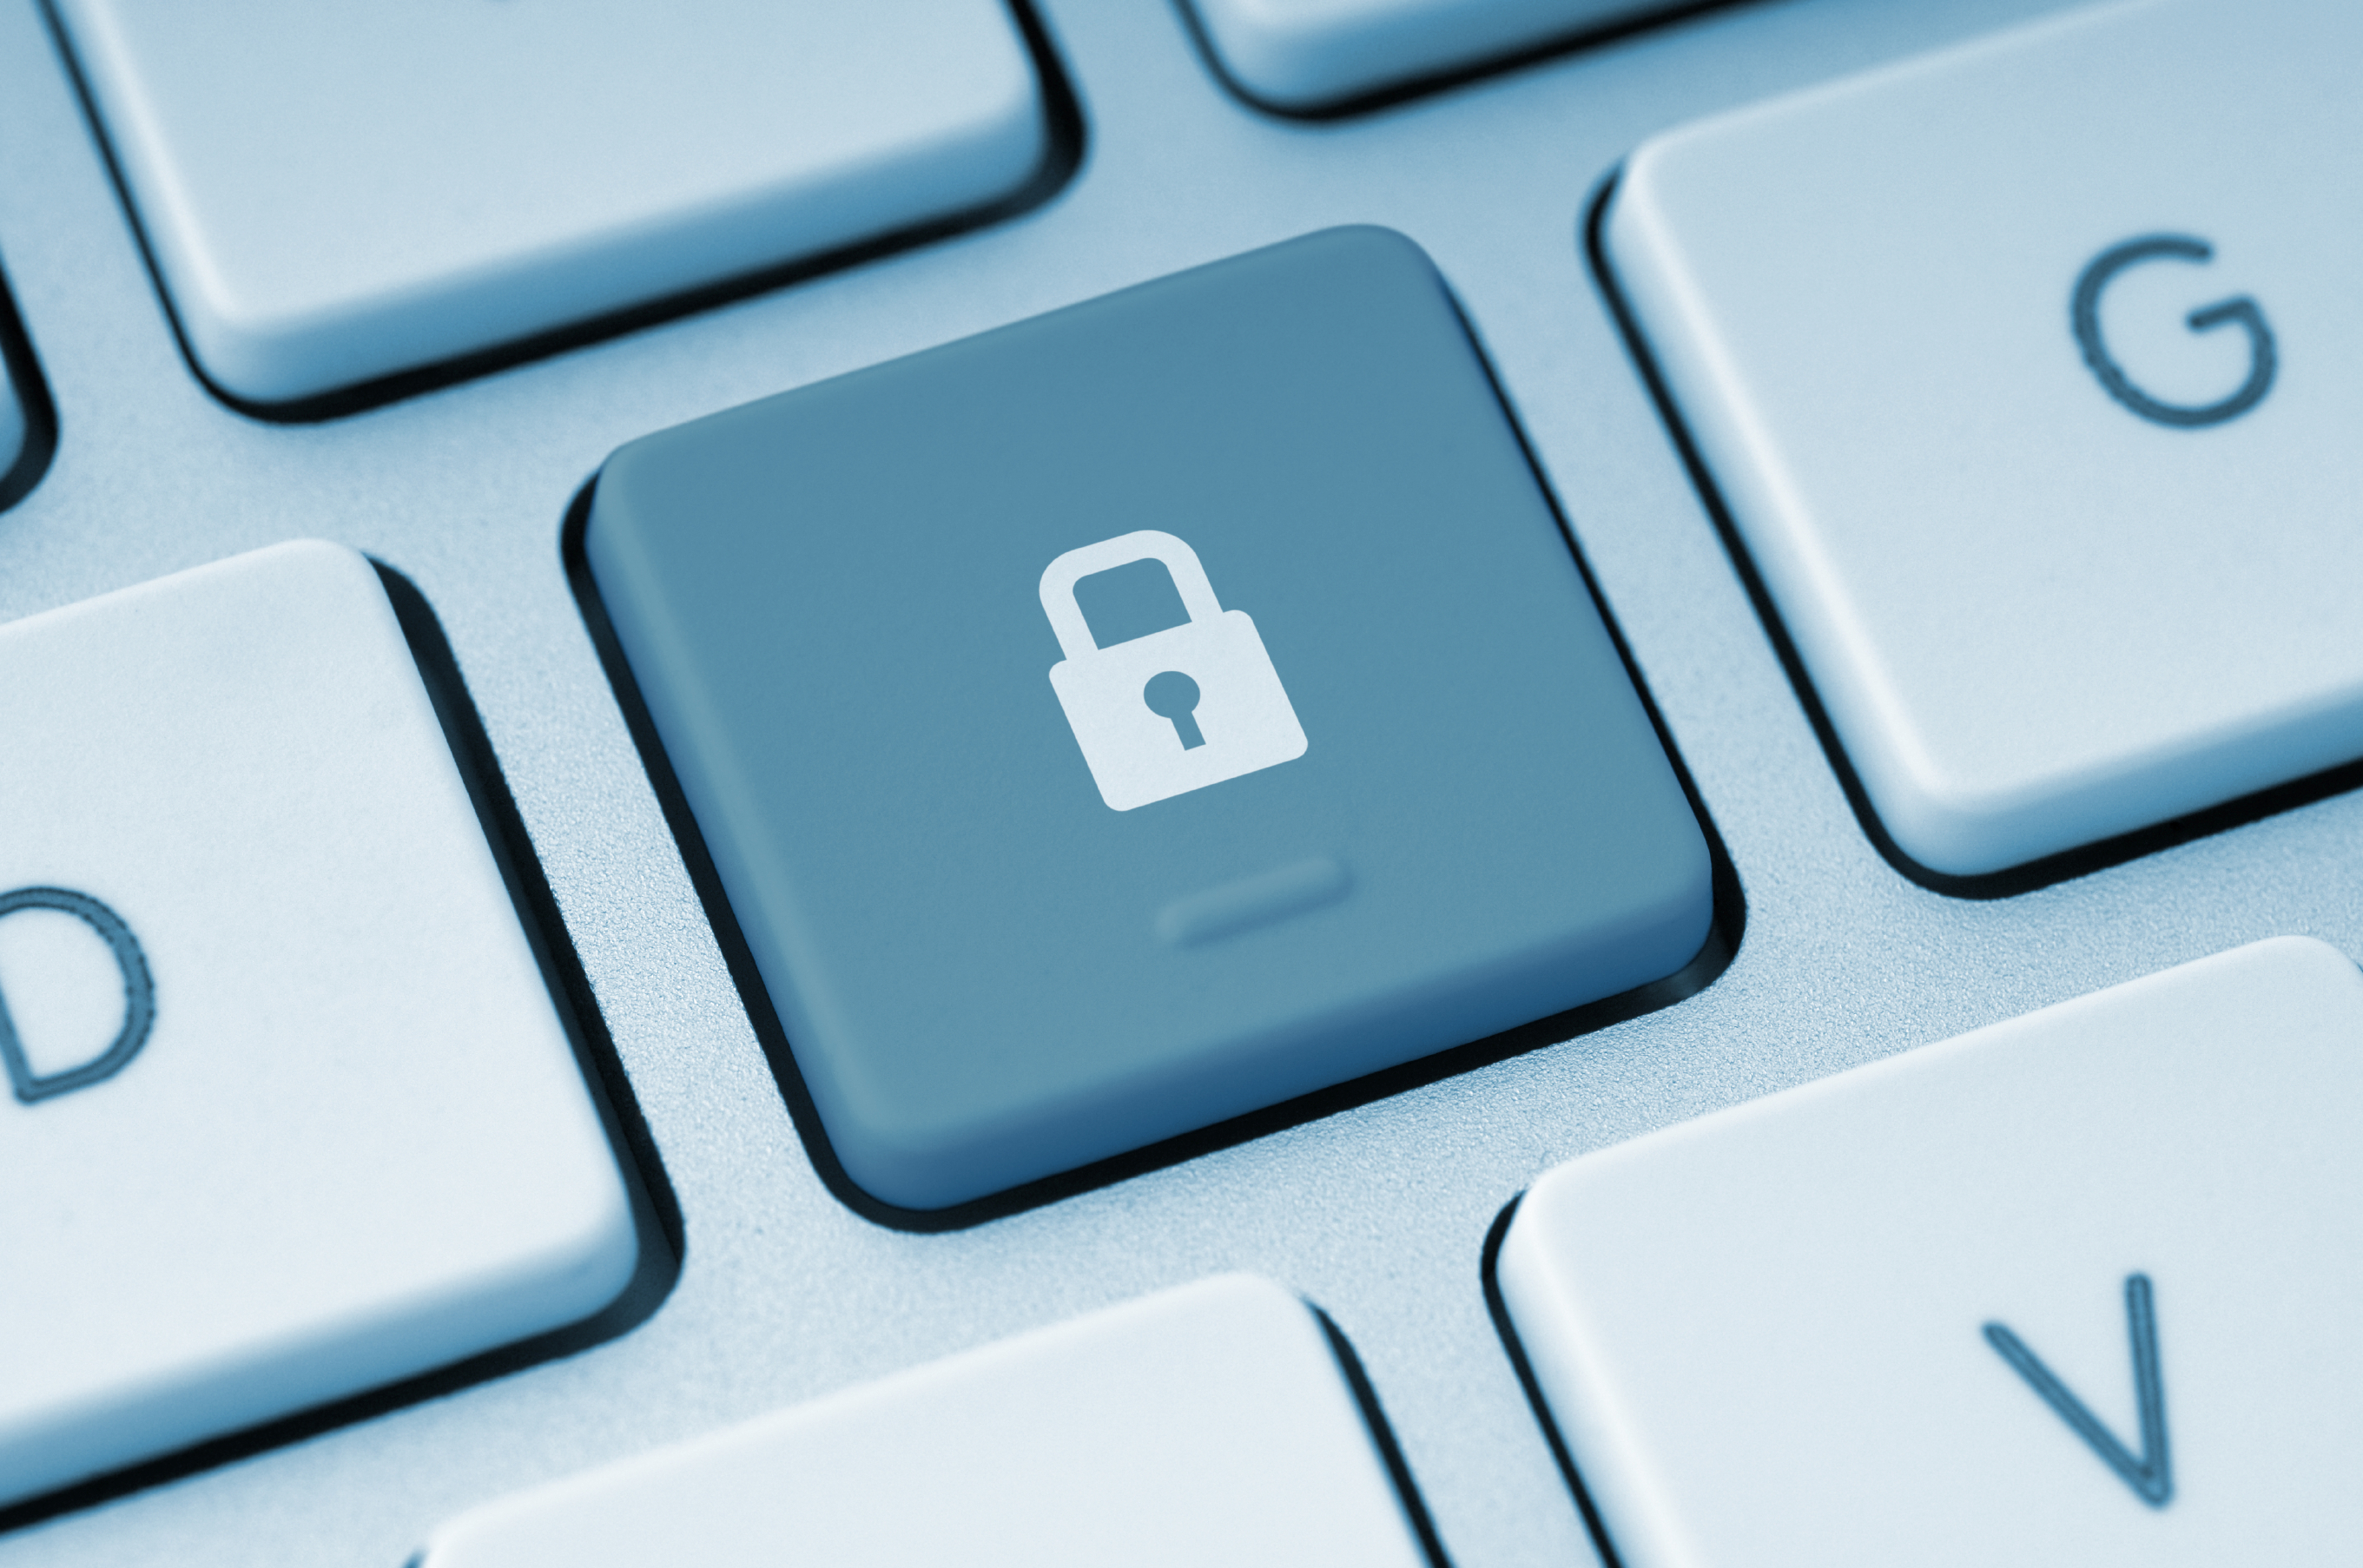 Wireless Security Research Topics